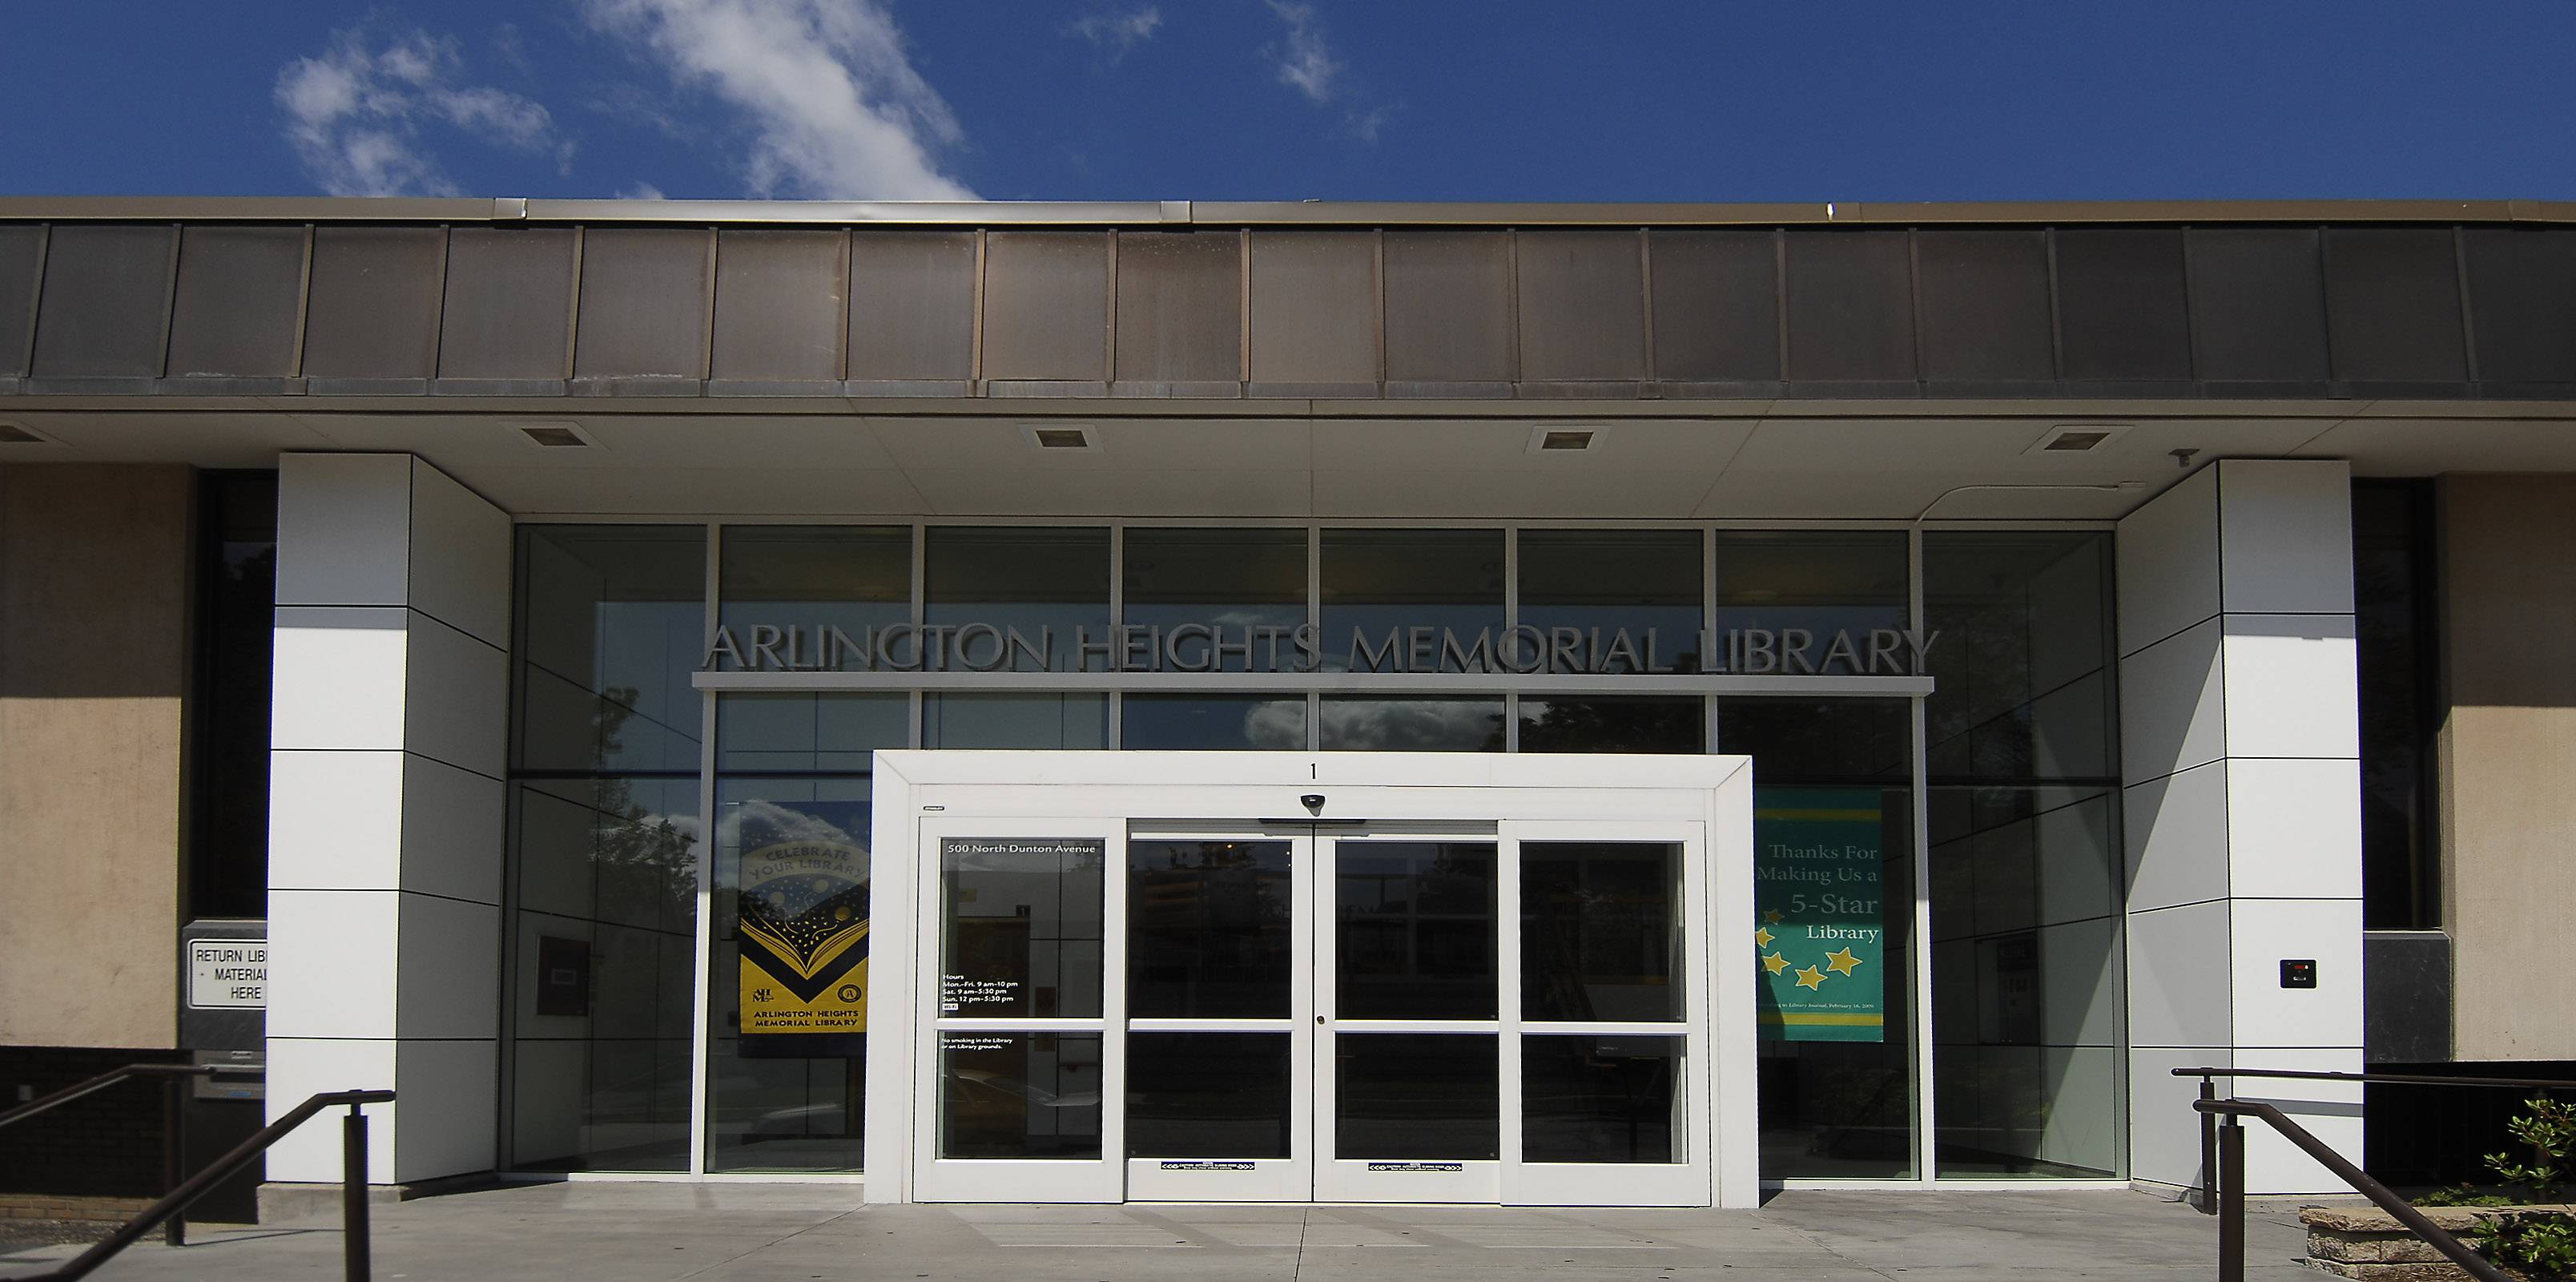 The Arlington Heights Memorial Library will maintain only one location for now, the library board decided Tuesday night, shelving the possibility of opening a branch on the north side of town.